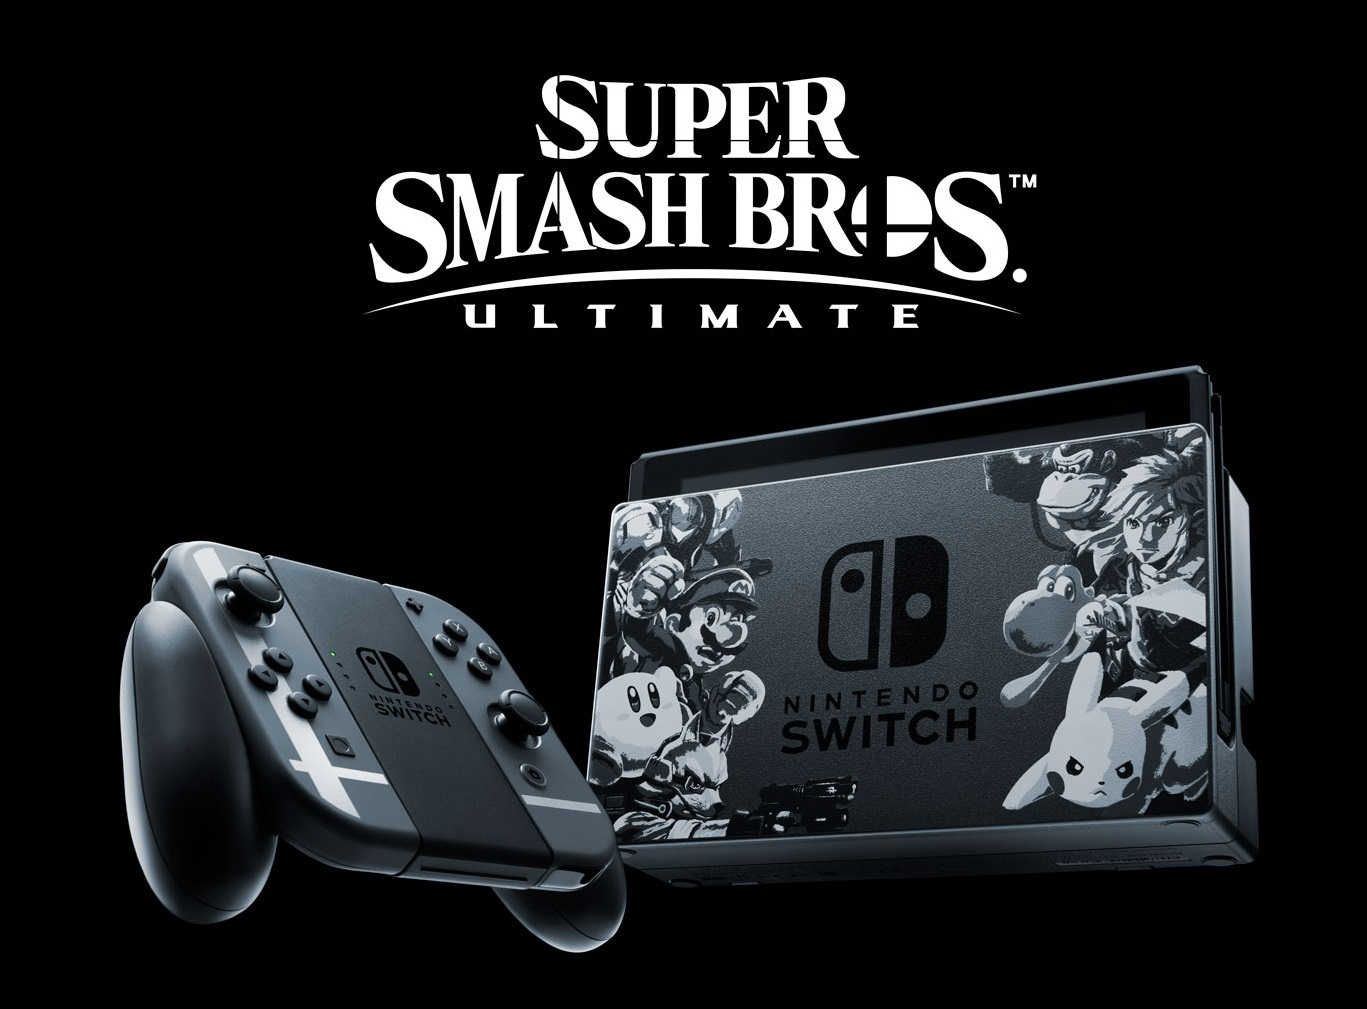 Nintendo Switch Super Smash Bros. Ultimate Edition Console for Nintendo Switch image